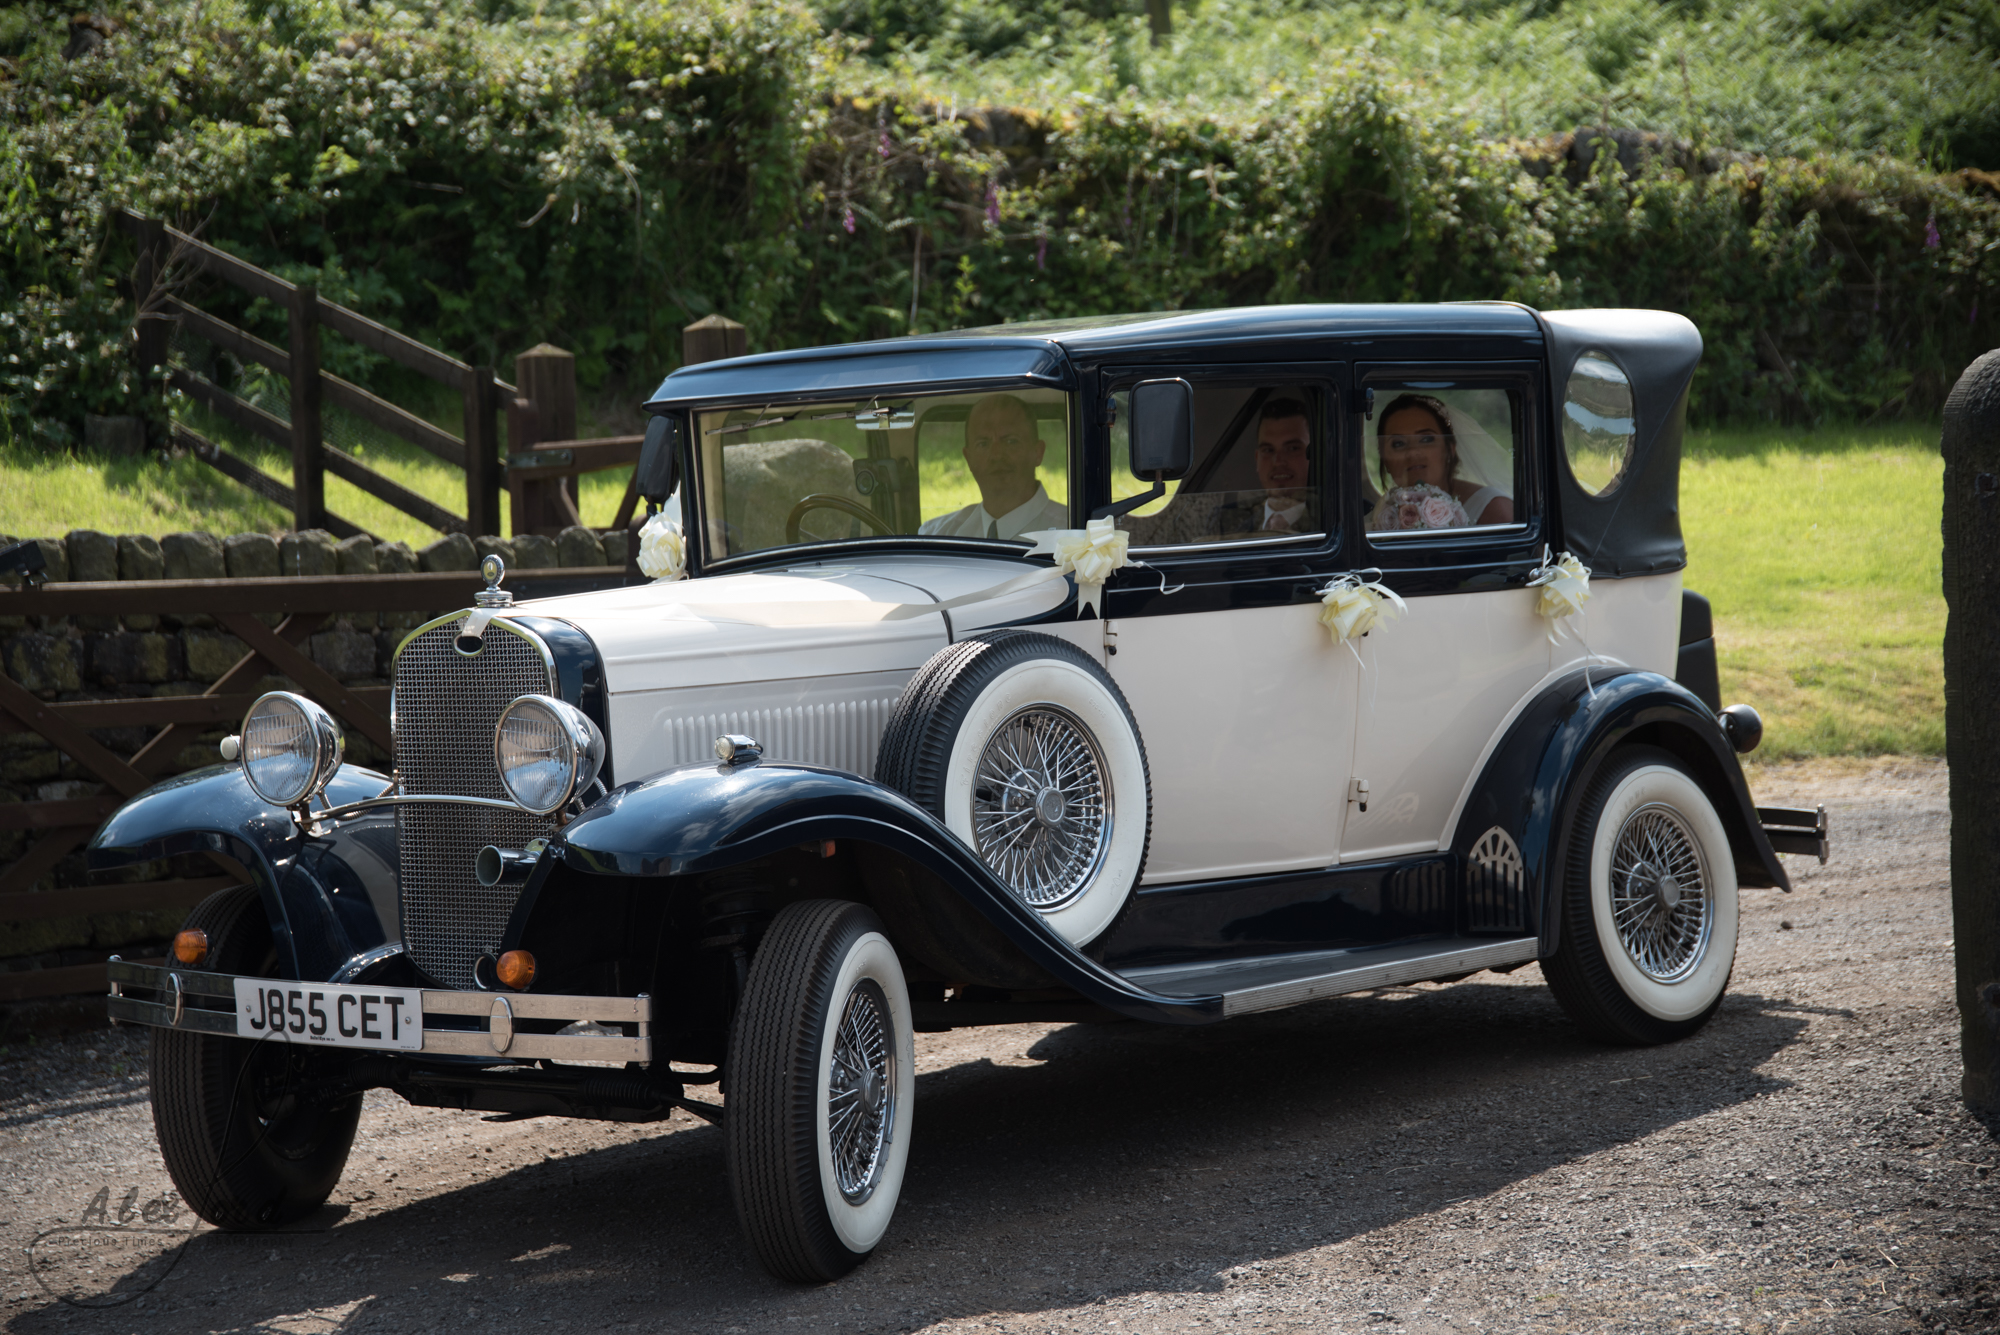 The car arrives at Swancar farm with the bride and groom